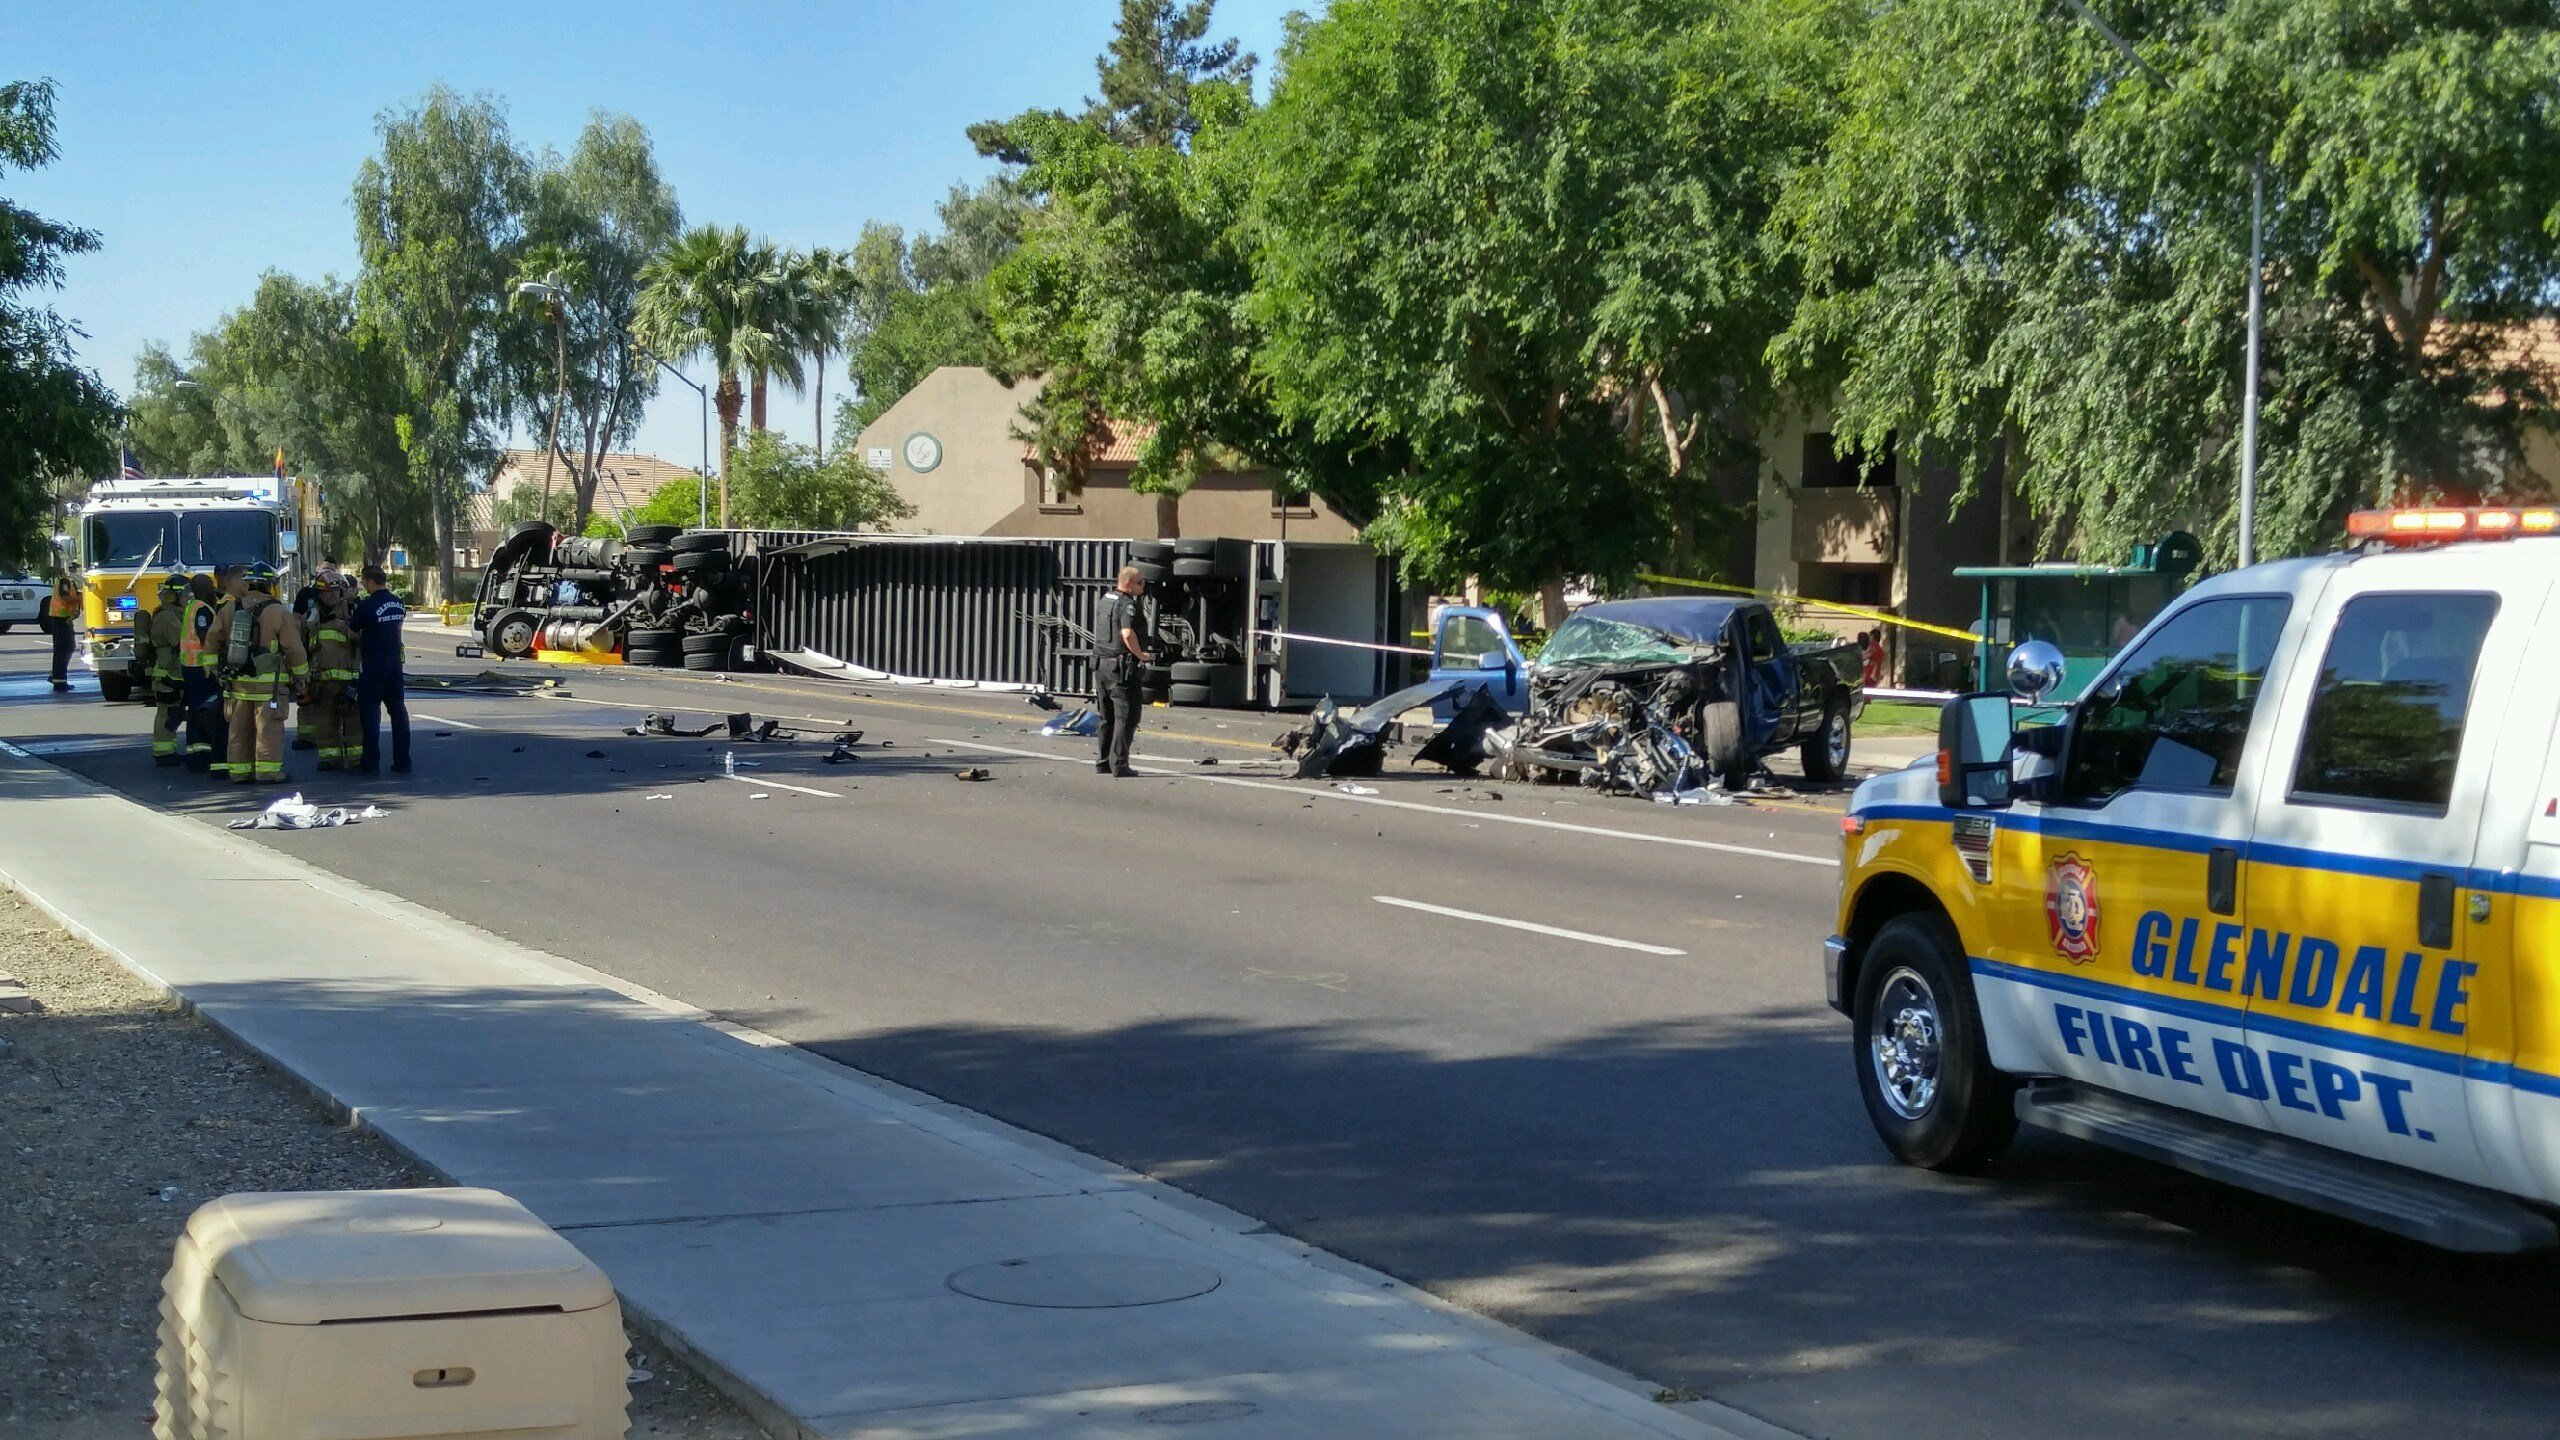 A truck collided with a semi in Glendale on Saturday morning. (Source: 3TV/CBS 5)